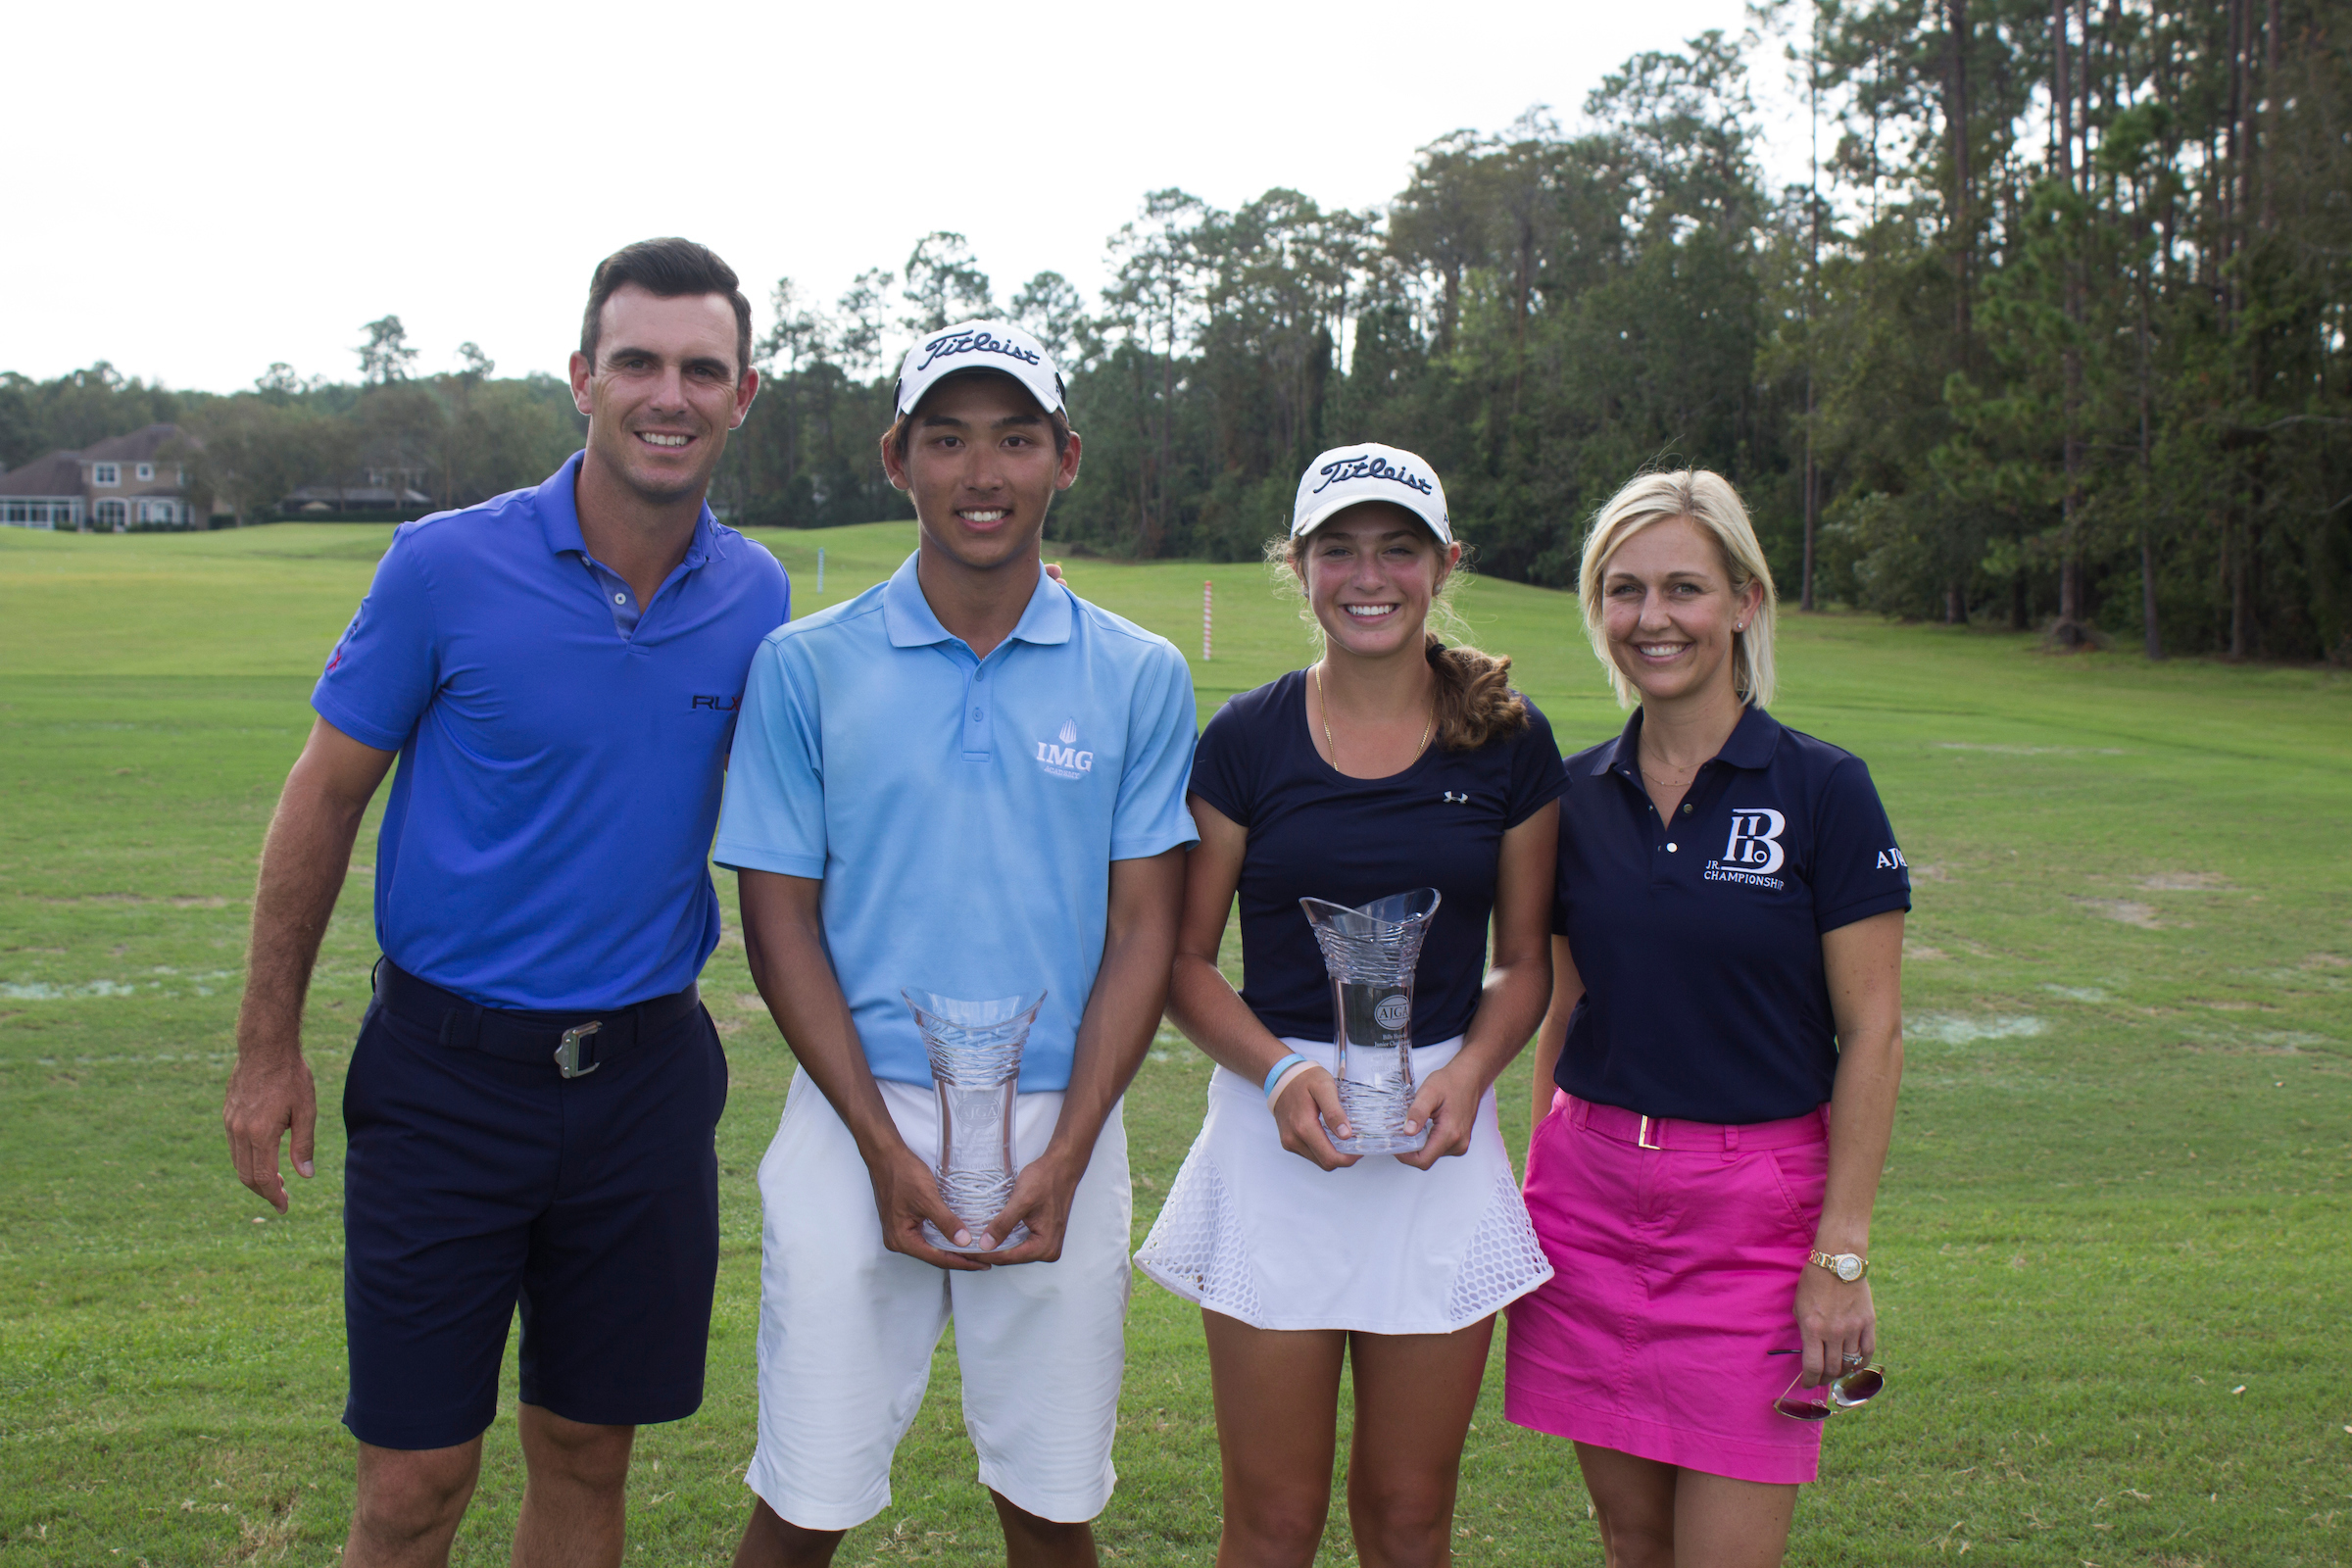 Teacharuangchit and Brittany and Billy Horschel, Rachel Kuehn - 2017 - Billy Horschel Junior_1.jpg